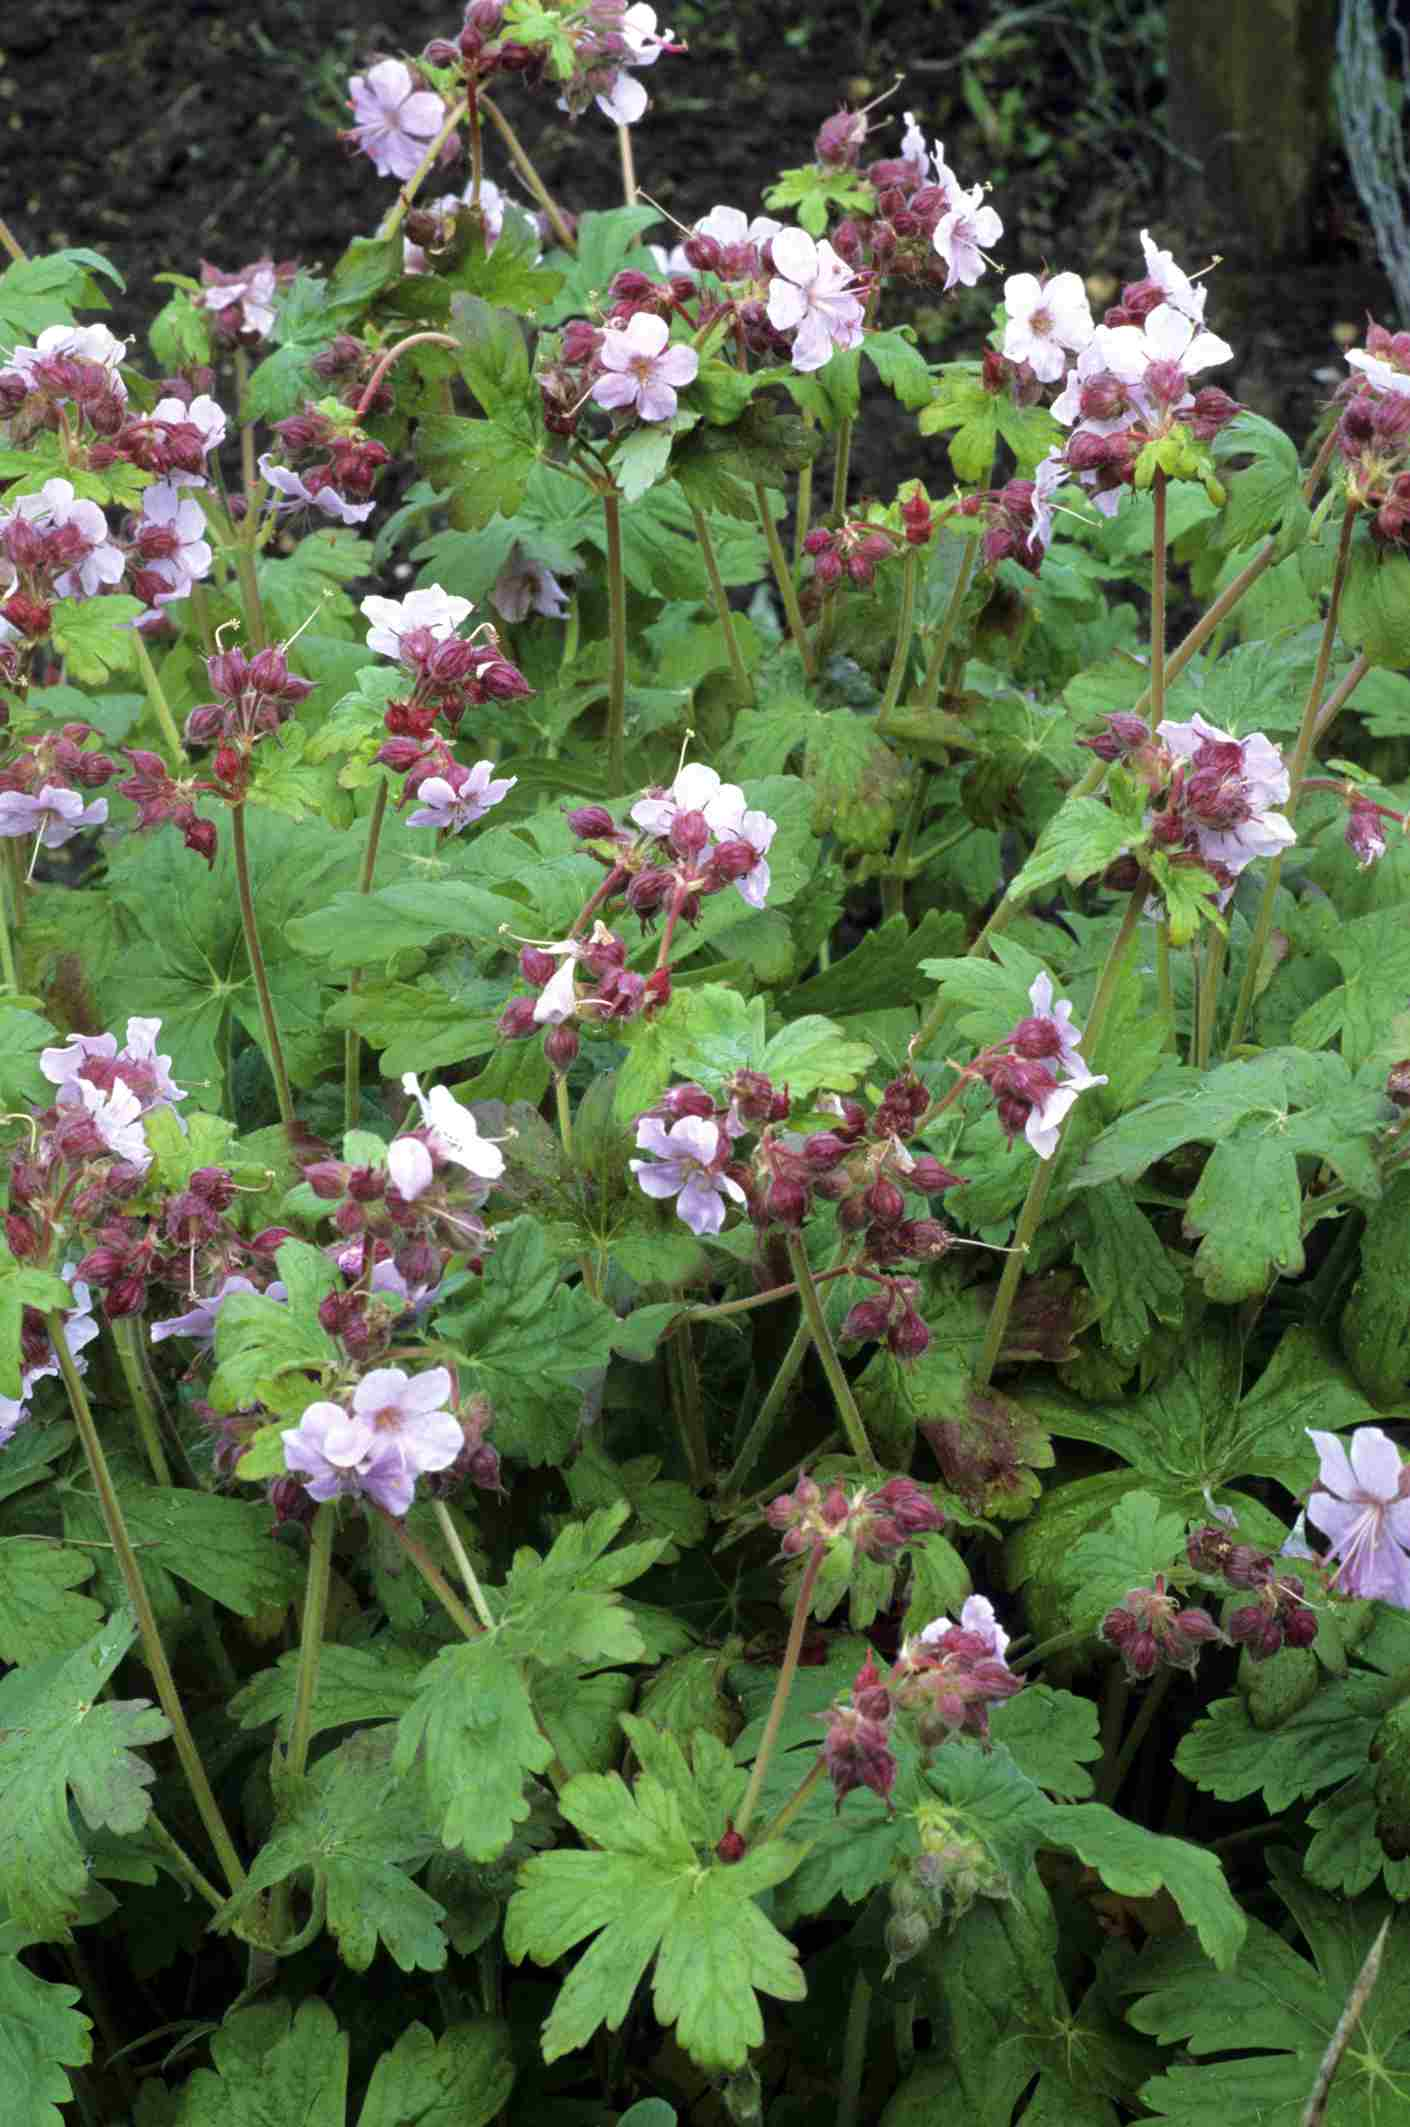 'Ingwersen's Variety' geraniums with pale pink flowers